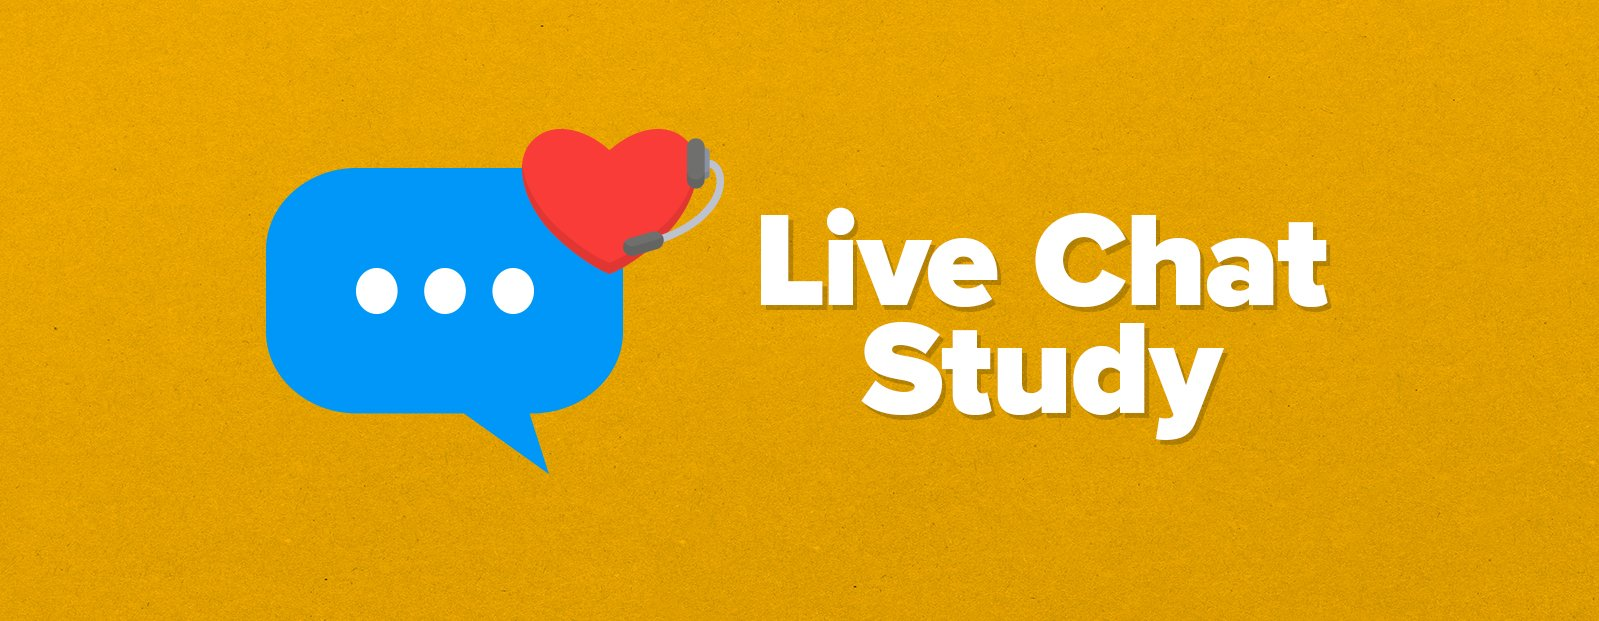 Live chat research study